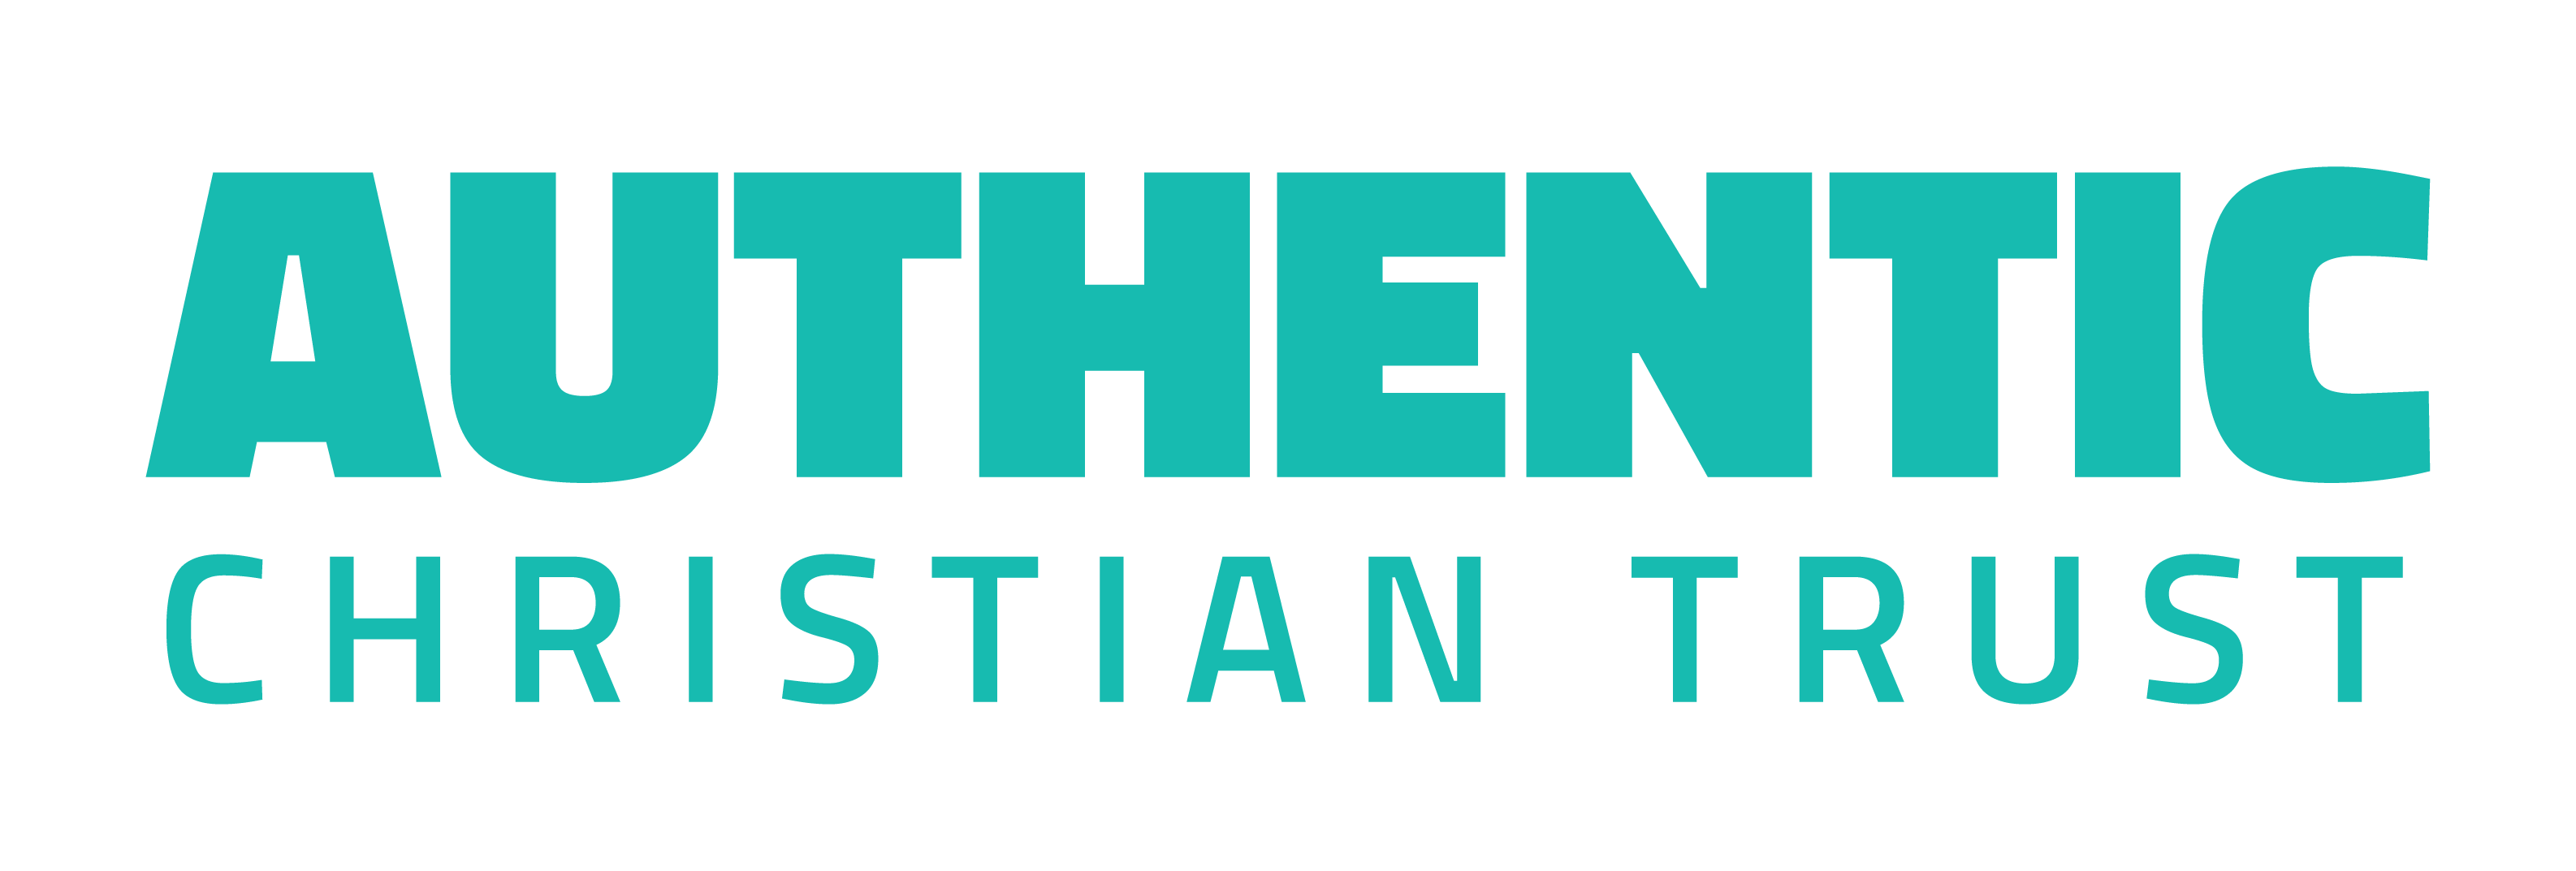 Authentic Christian Trust